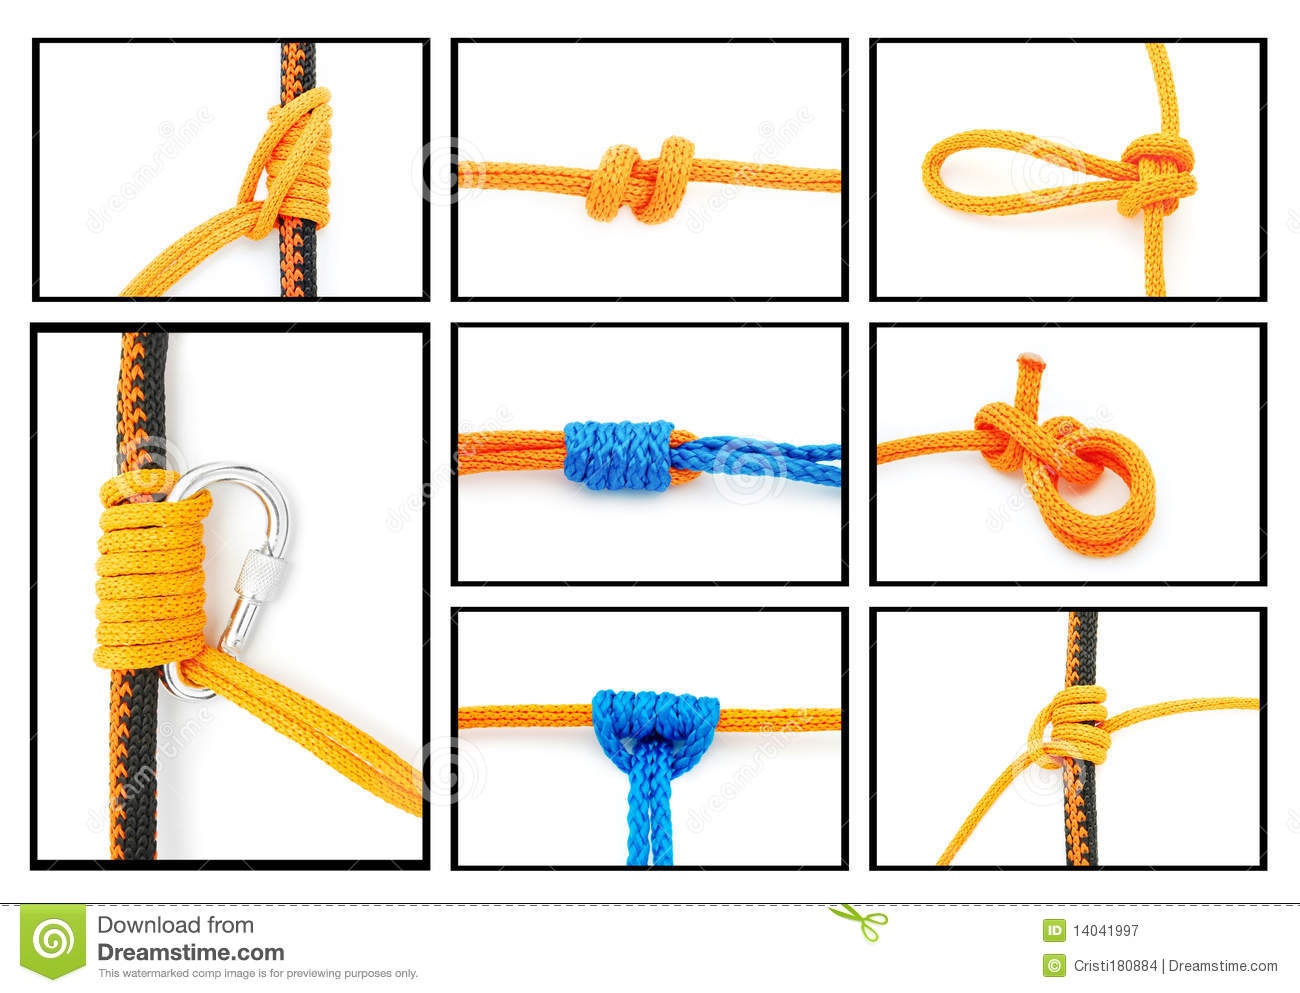 Knots collage